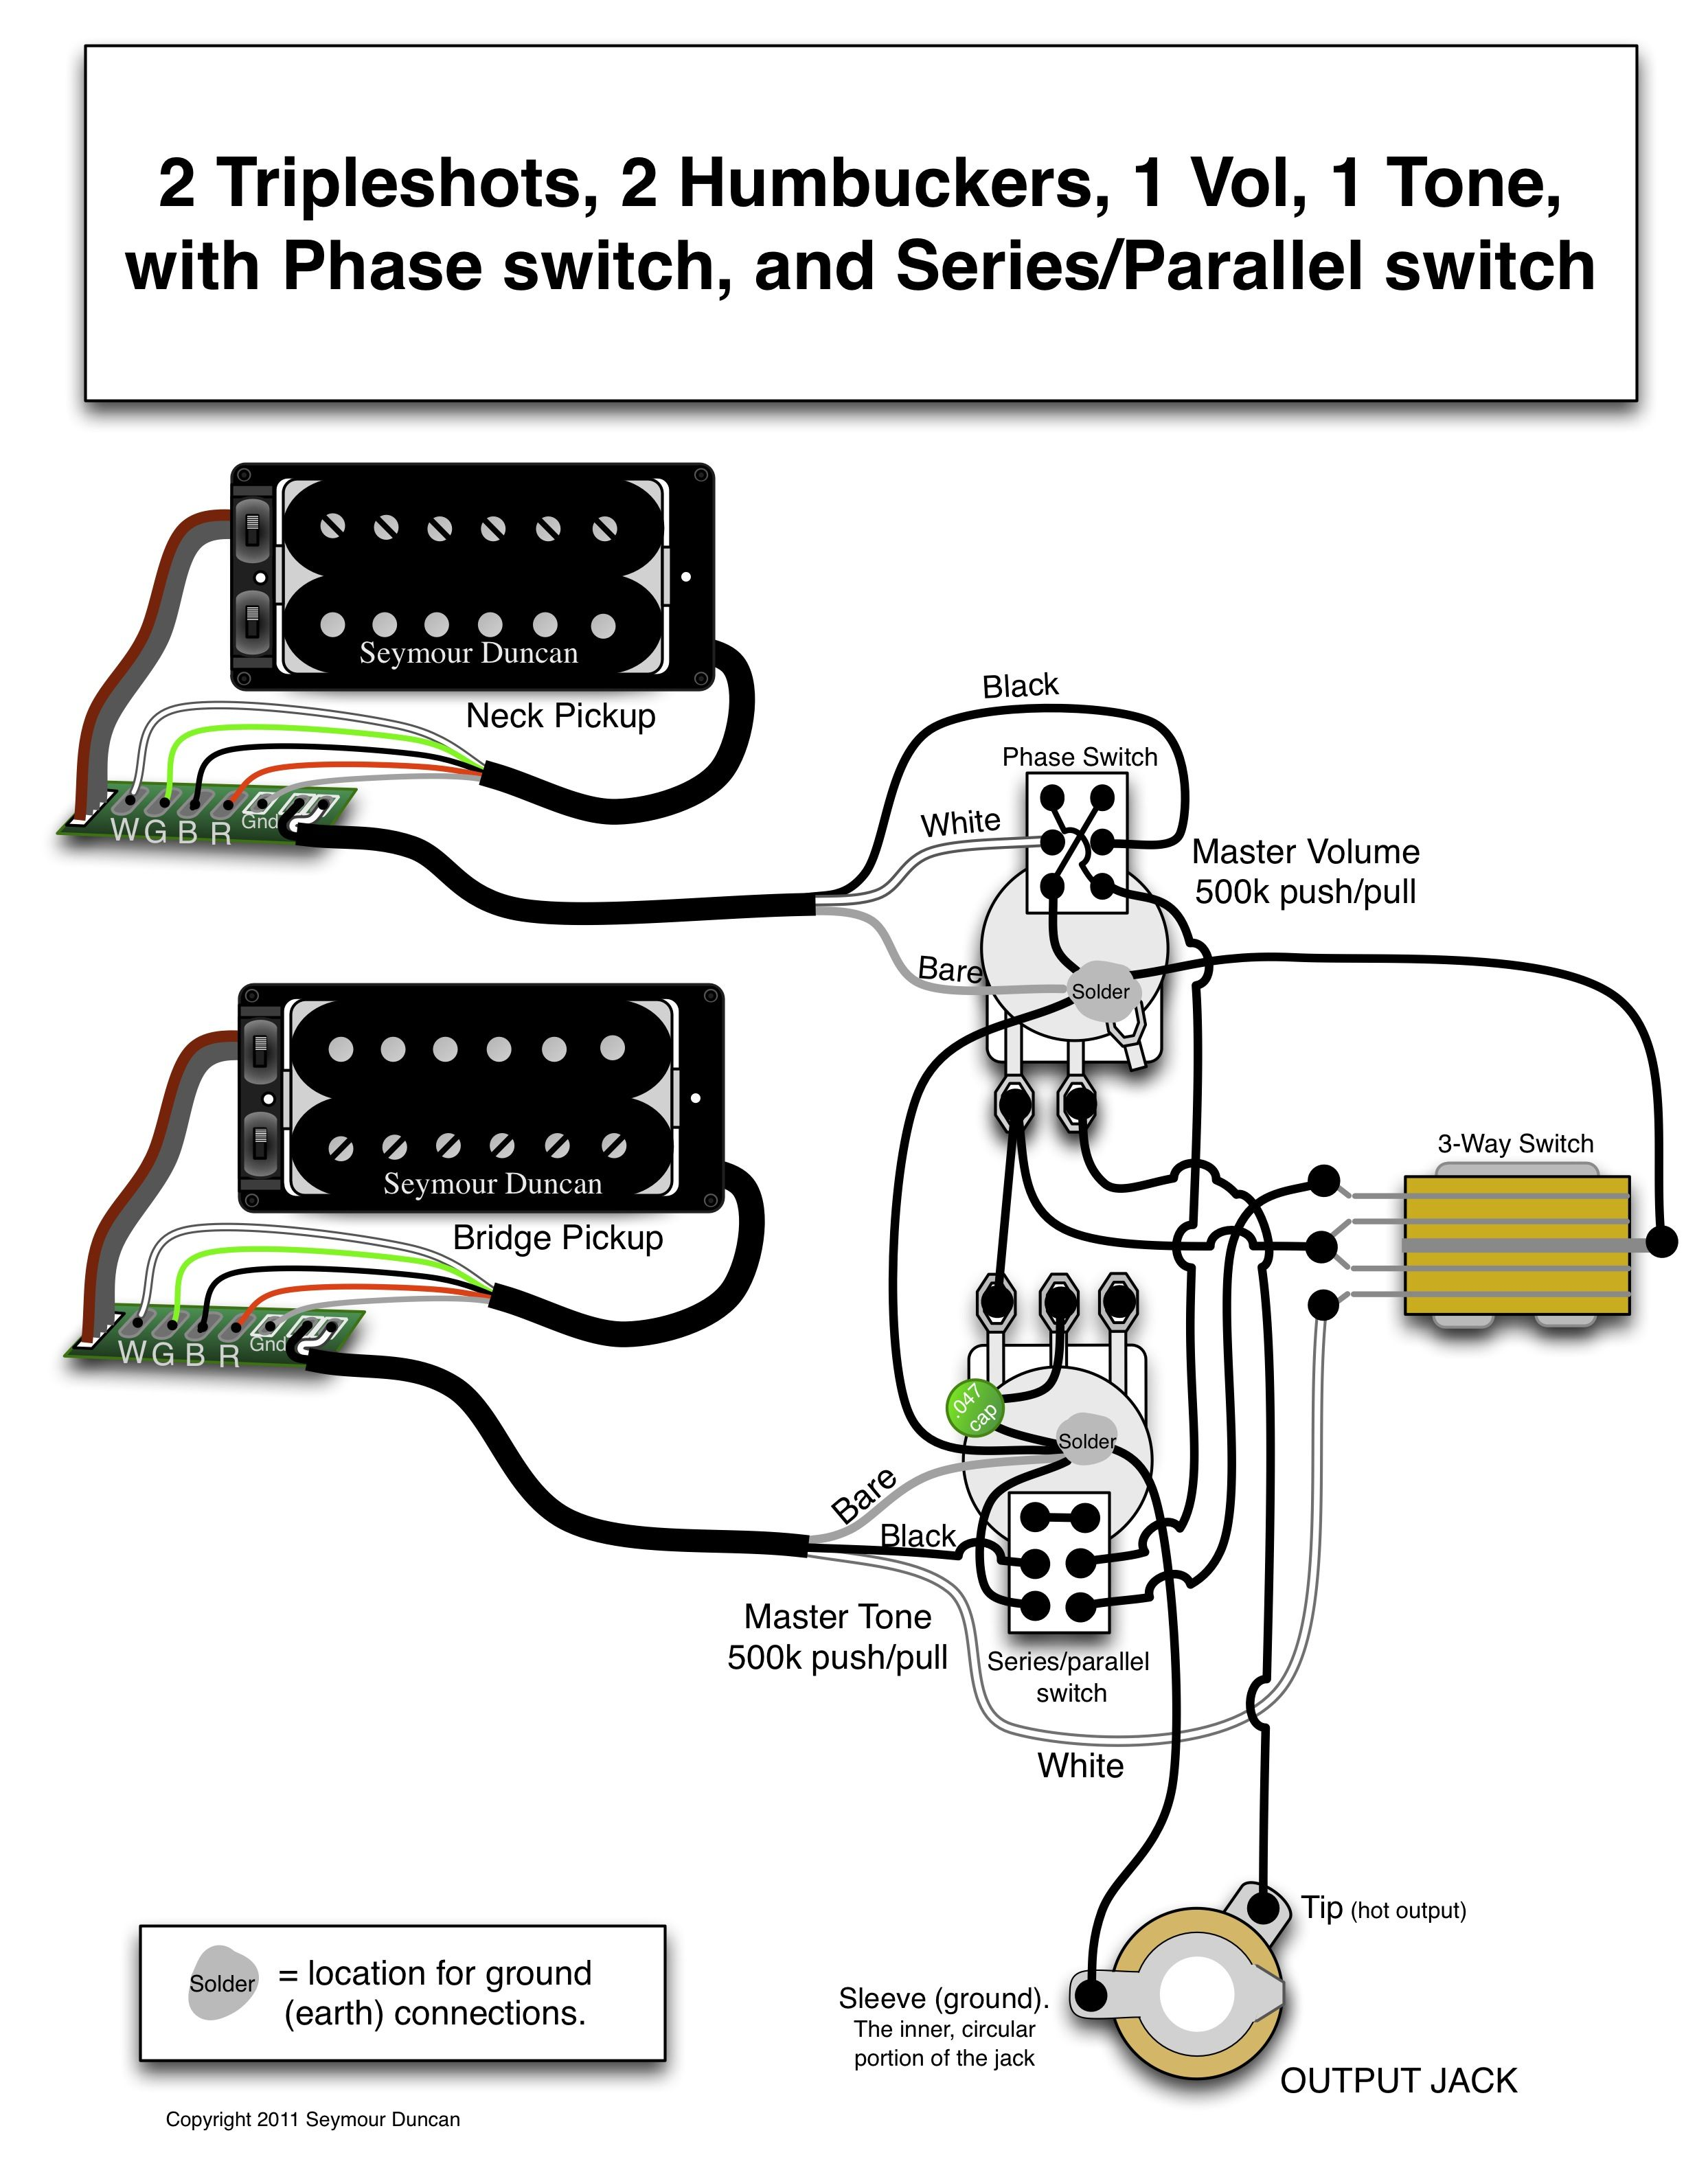 Seymour Duncan wiring diagram - 2 Triple Shots, 2 Humbuckers, 1 Vol with  Phase switch, 1 Tone with Series/Parallel switch